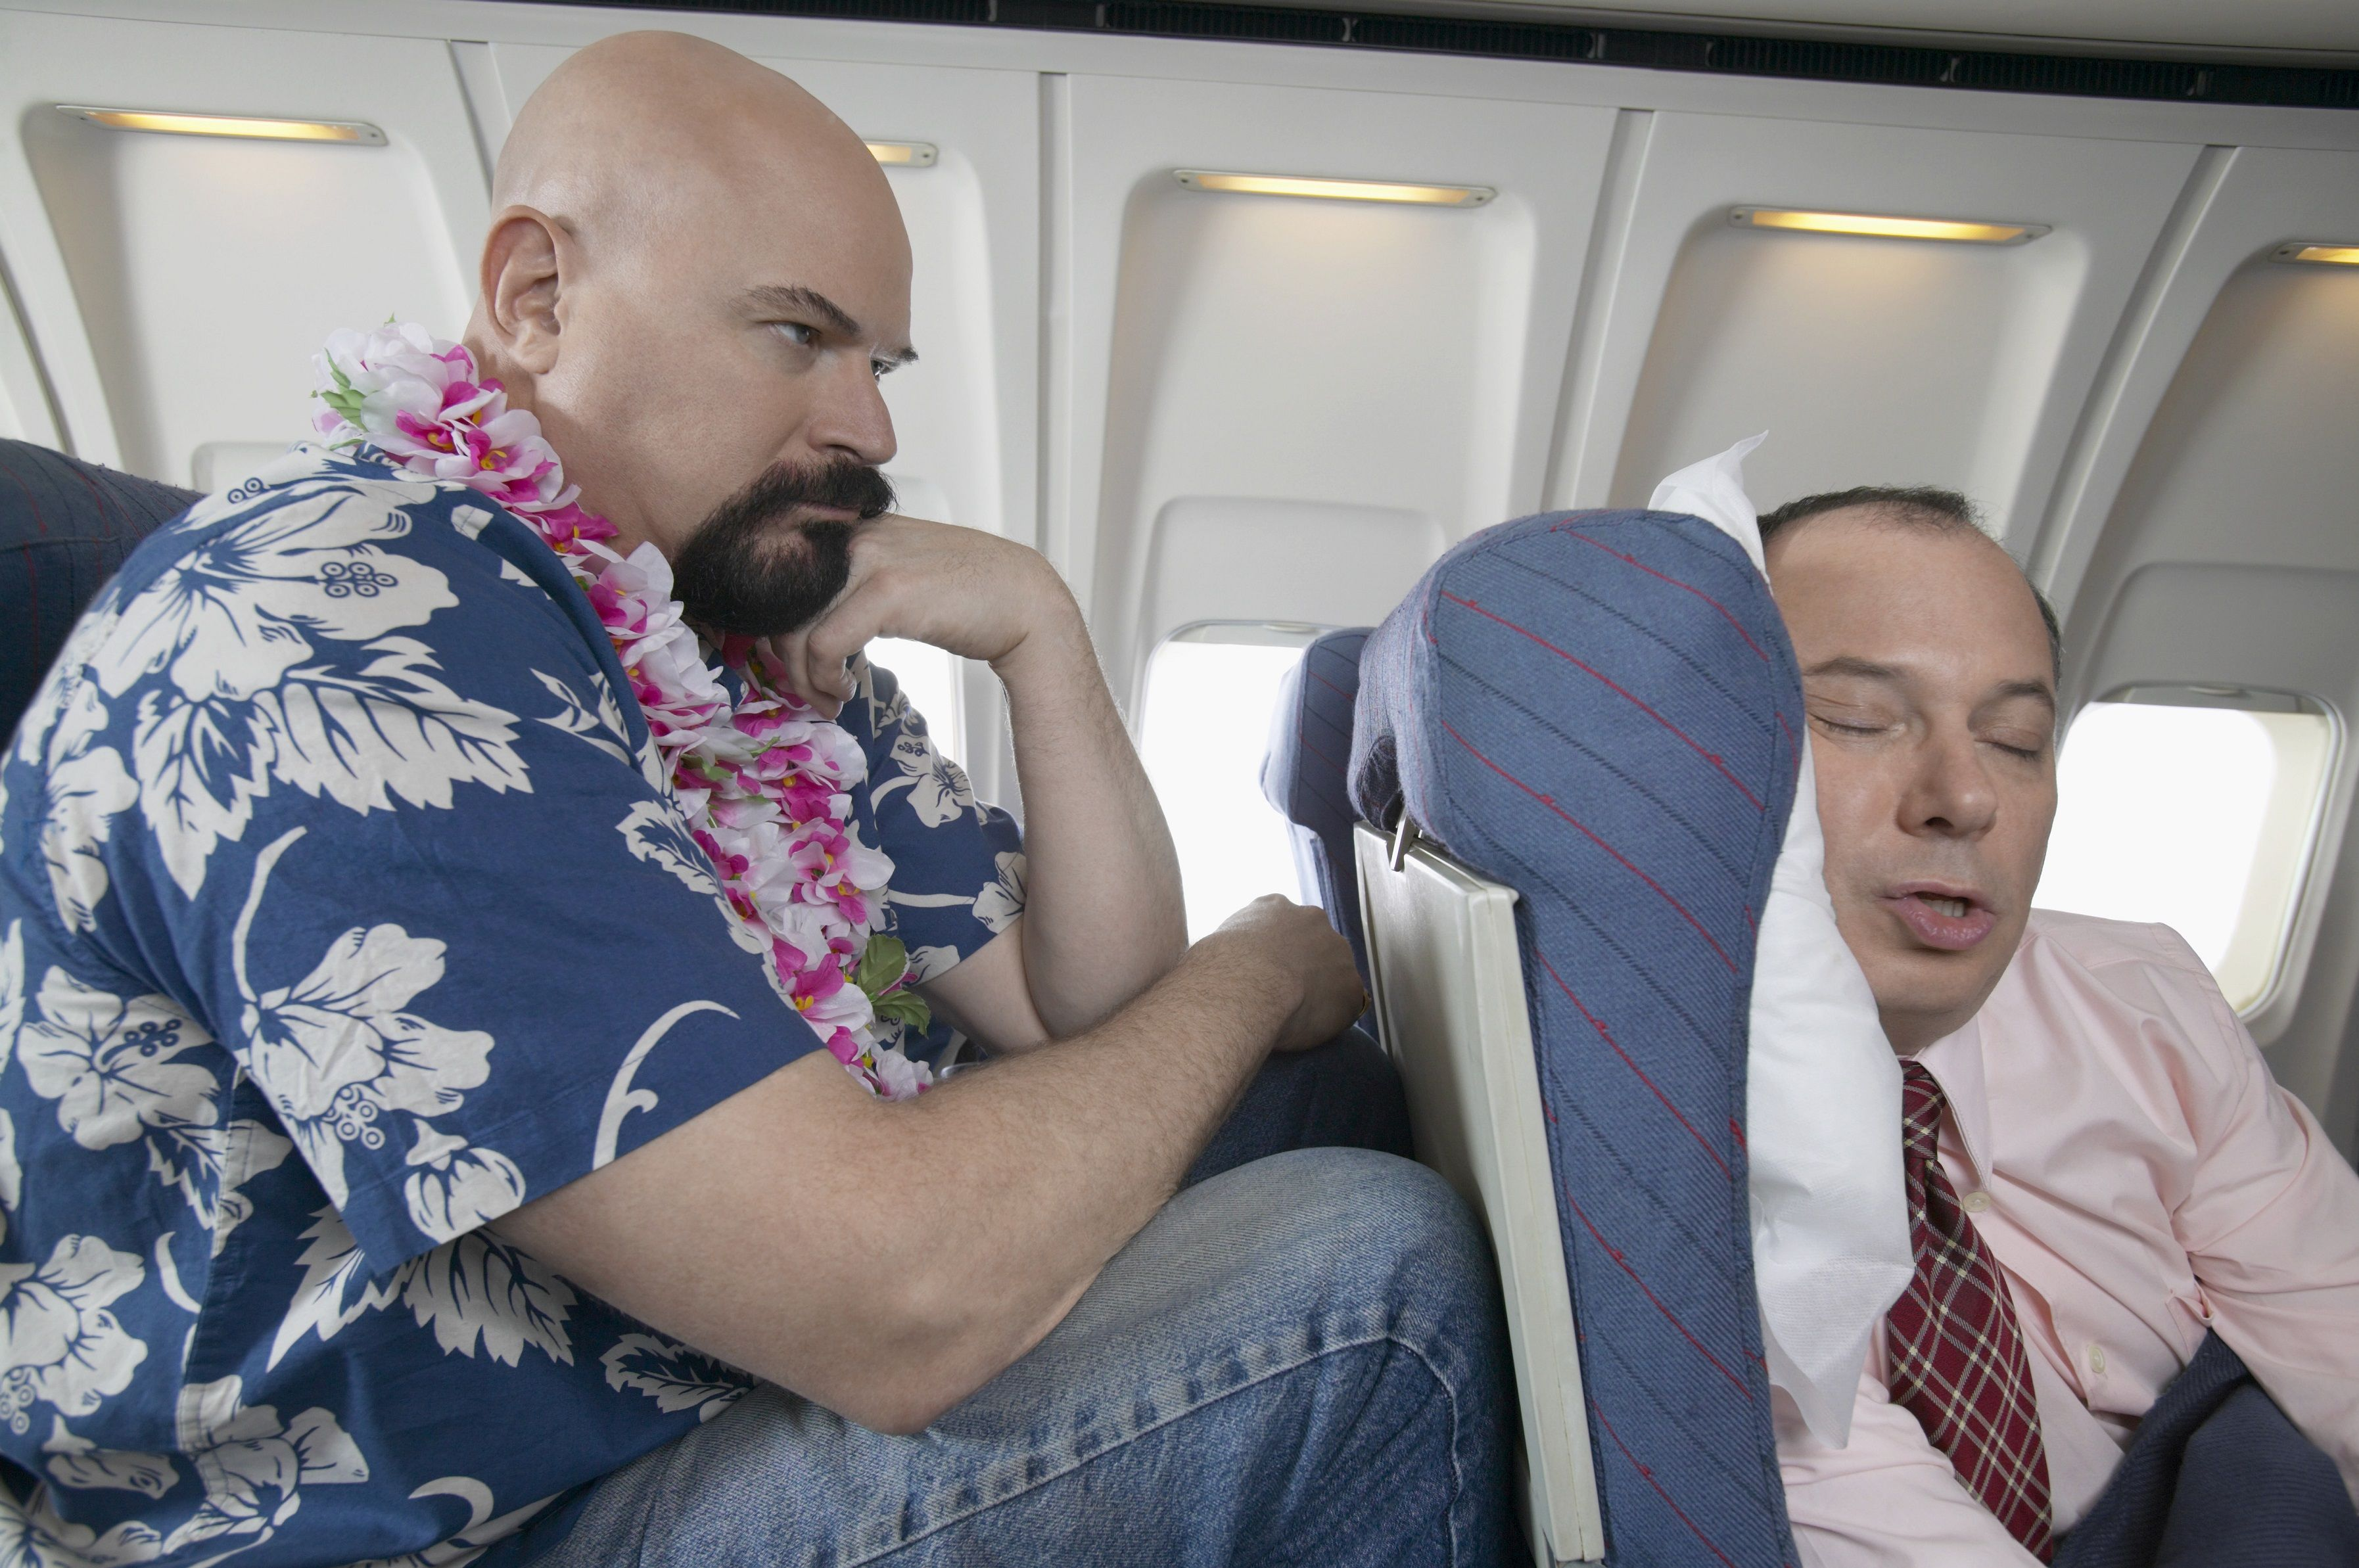 Flight Attendants Totally Have Sex on Flights, and Other